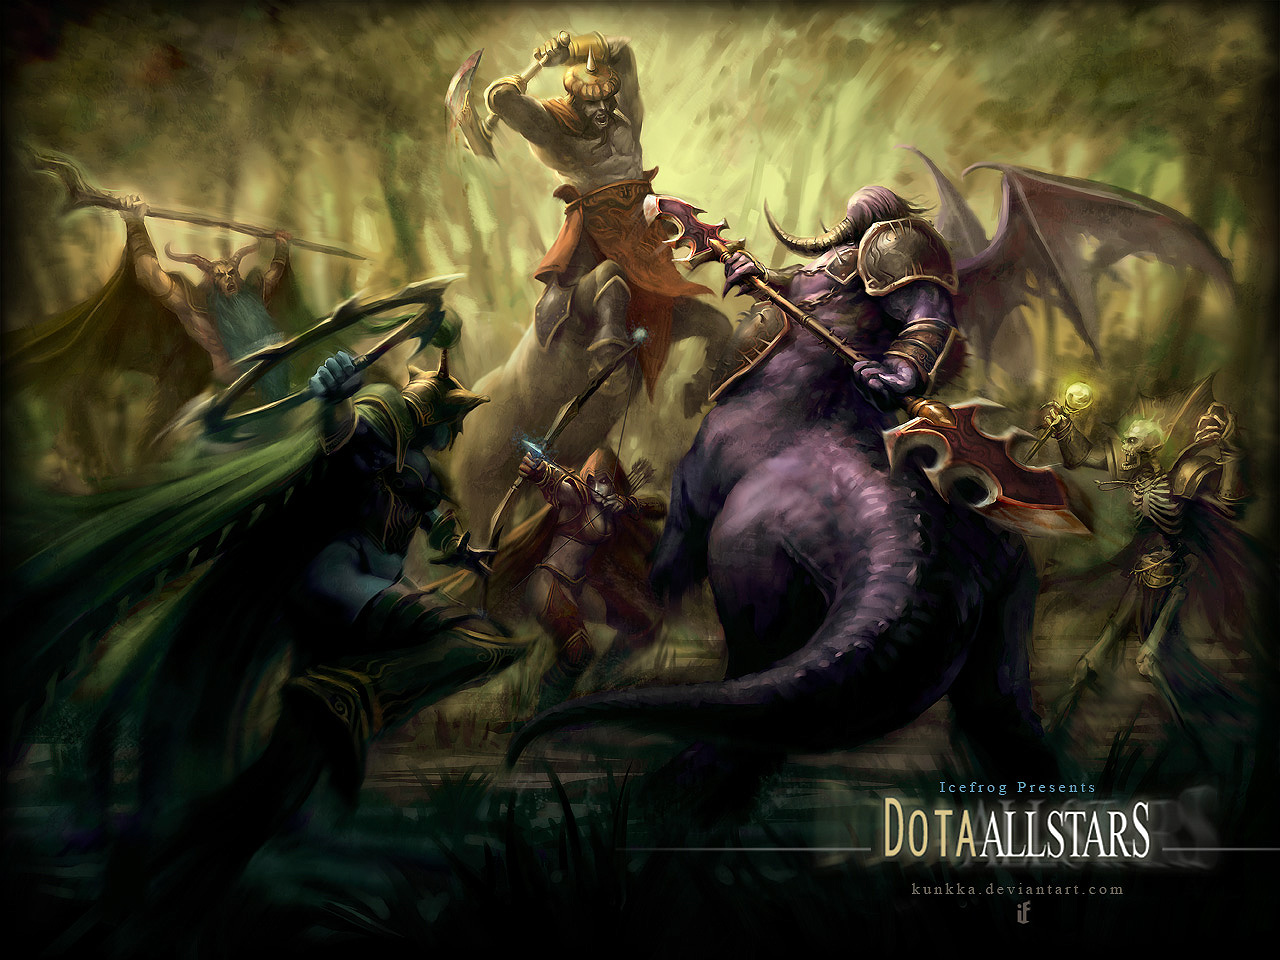 Dota 6.69c Map Download | Dota Allstars 6.69c Map Download Official